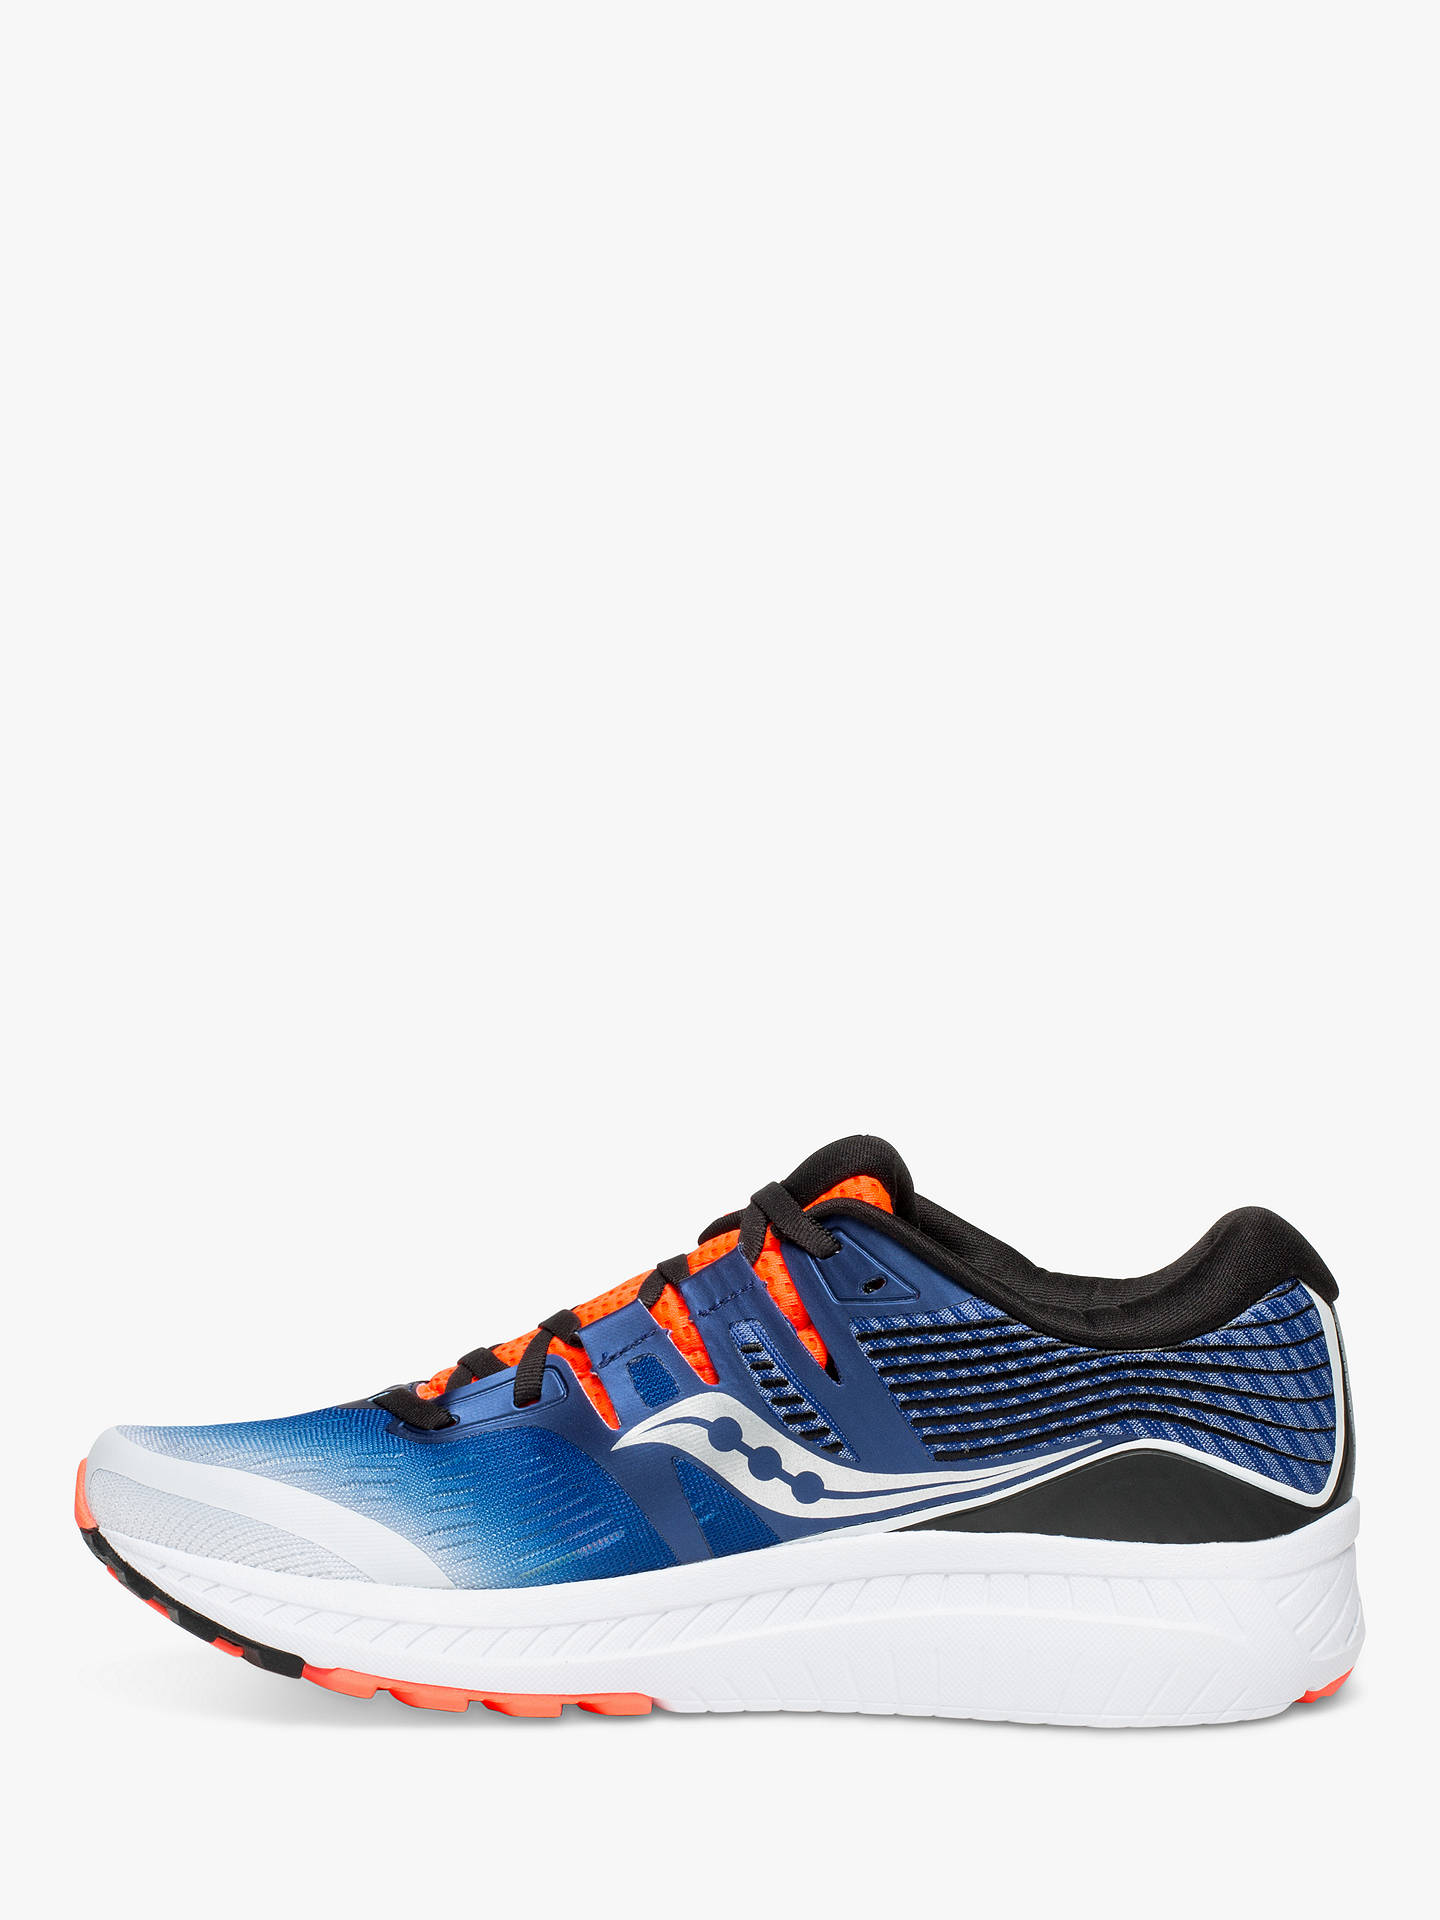 BuySaucony Ride ISO Men's Running Shoes, White/Blue/Vizired, 7 Online at johnlewis.com